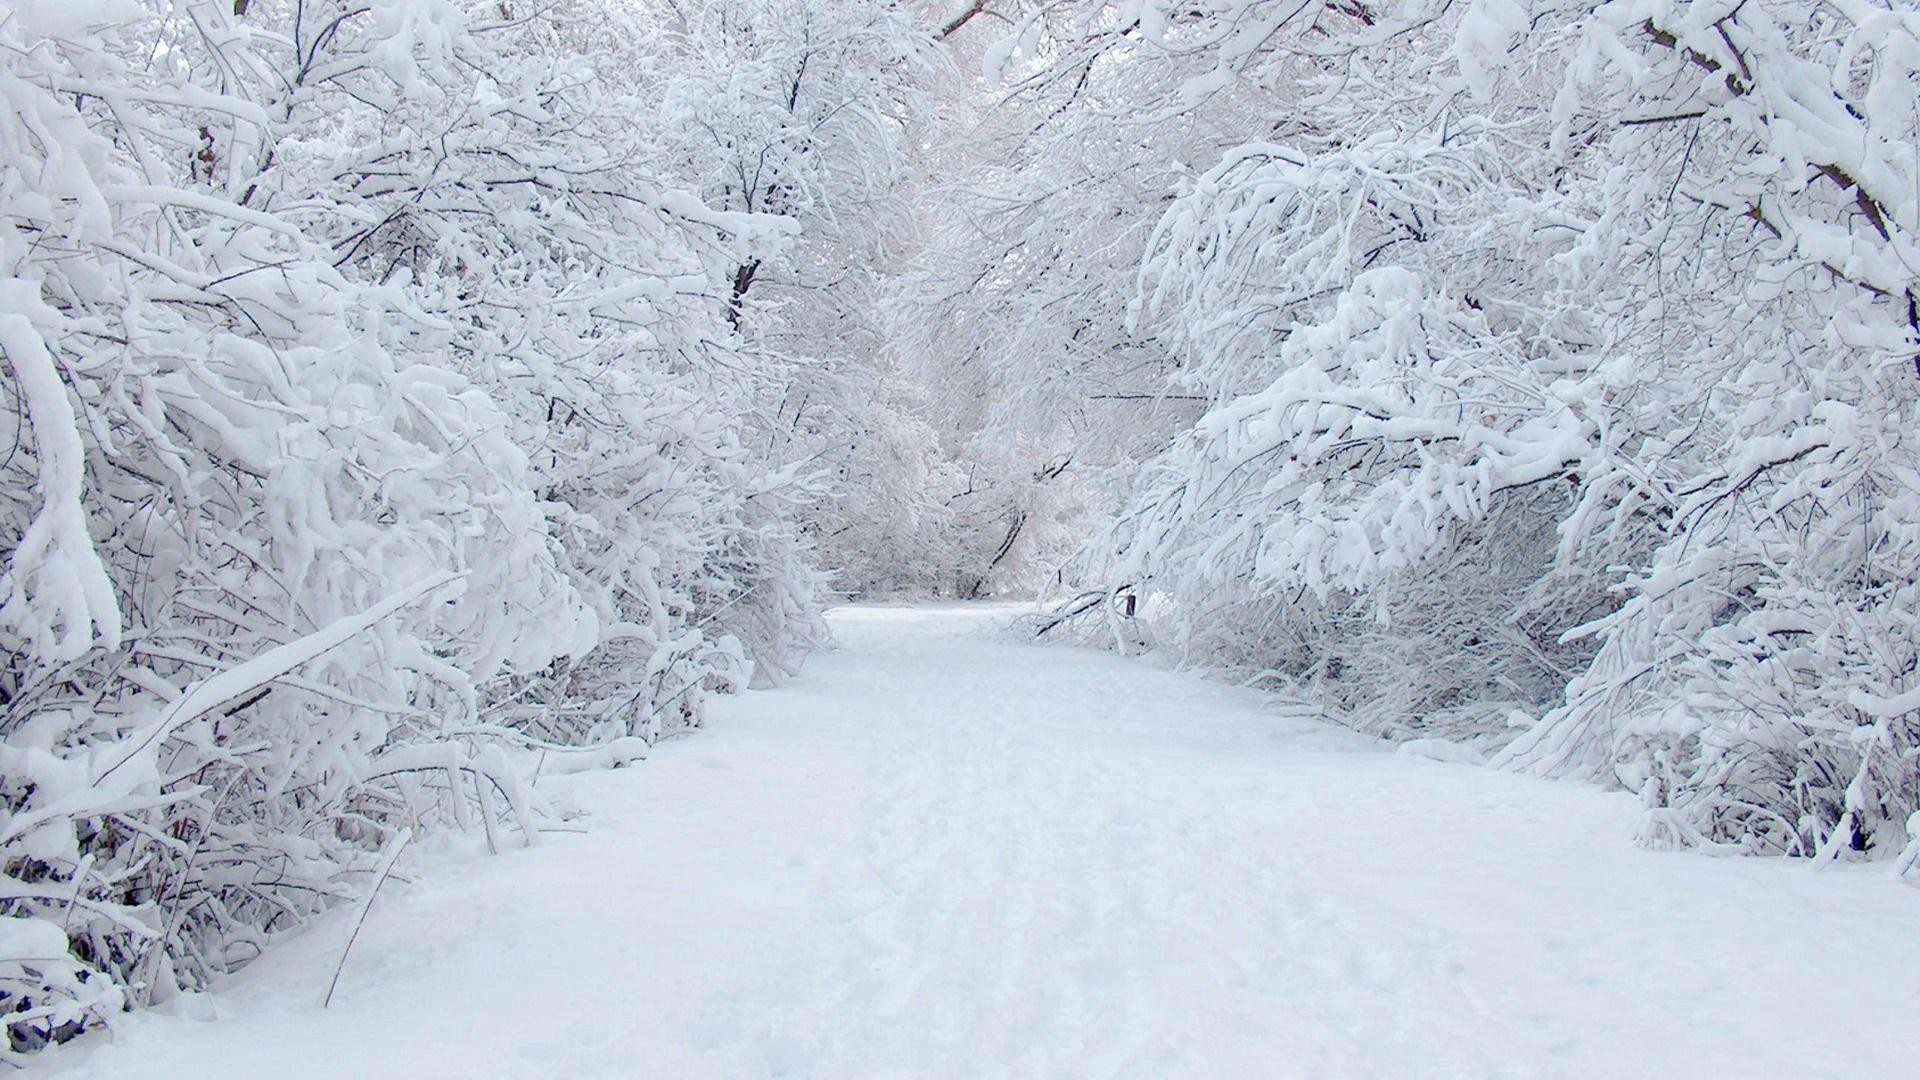 Winter Wonderland Backgrounds (41+ images).